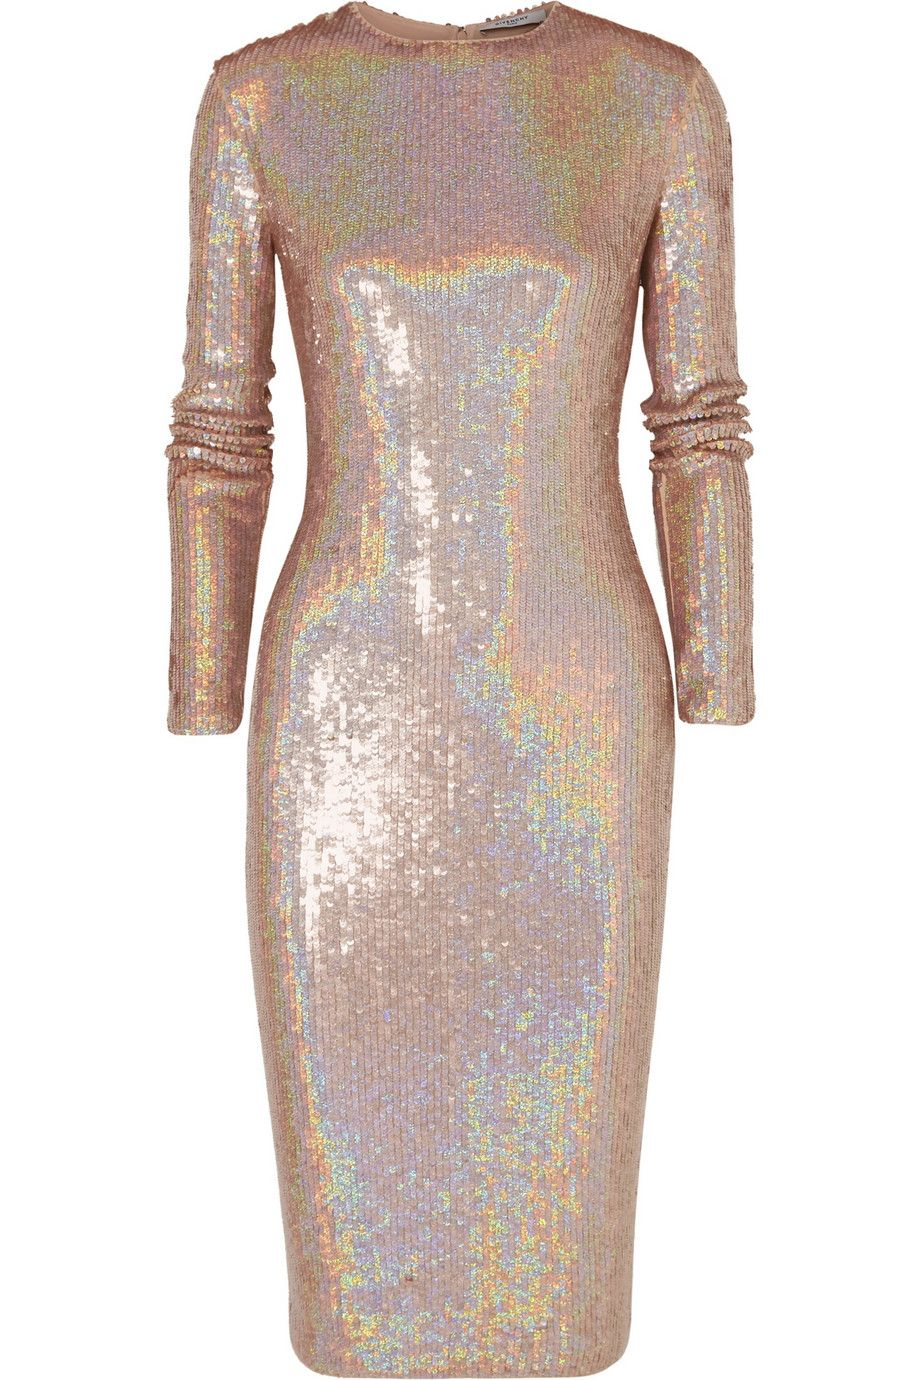 Le Meilleur Givenchy Knee Length Dress In Iridescent Sequined Jersey Ce Mois Ci